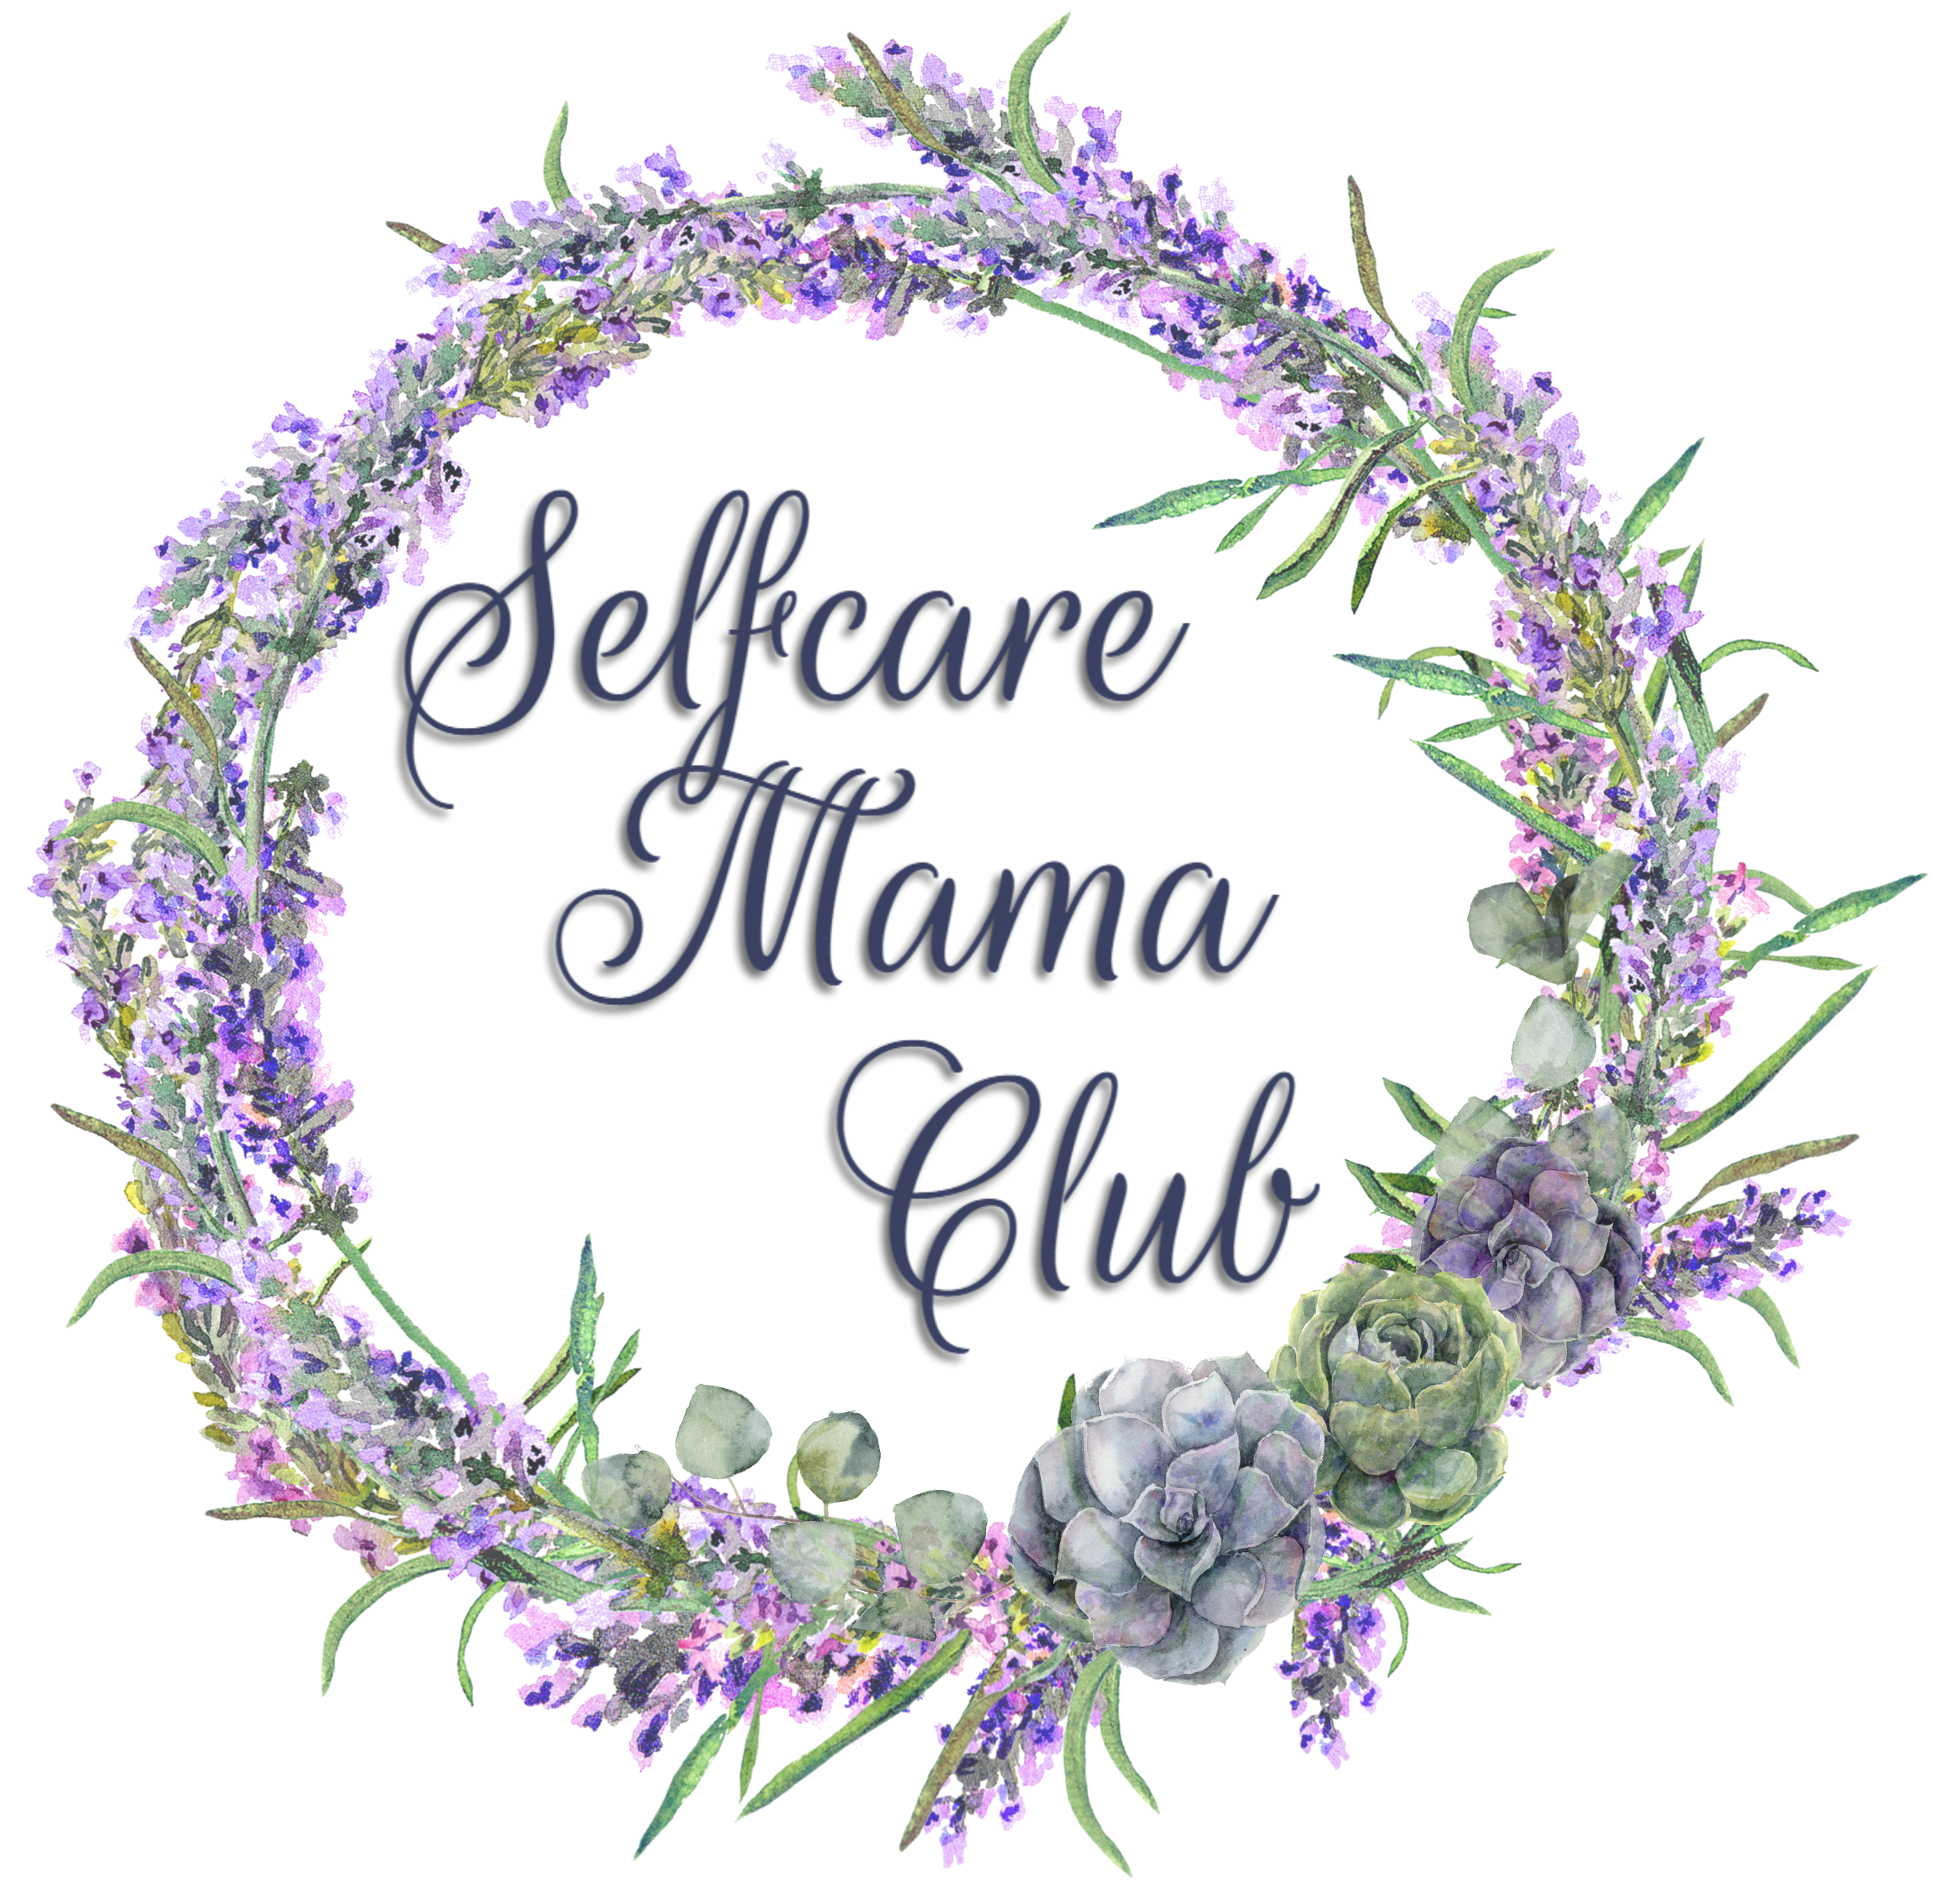 Self Care Mama Club